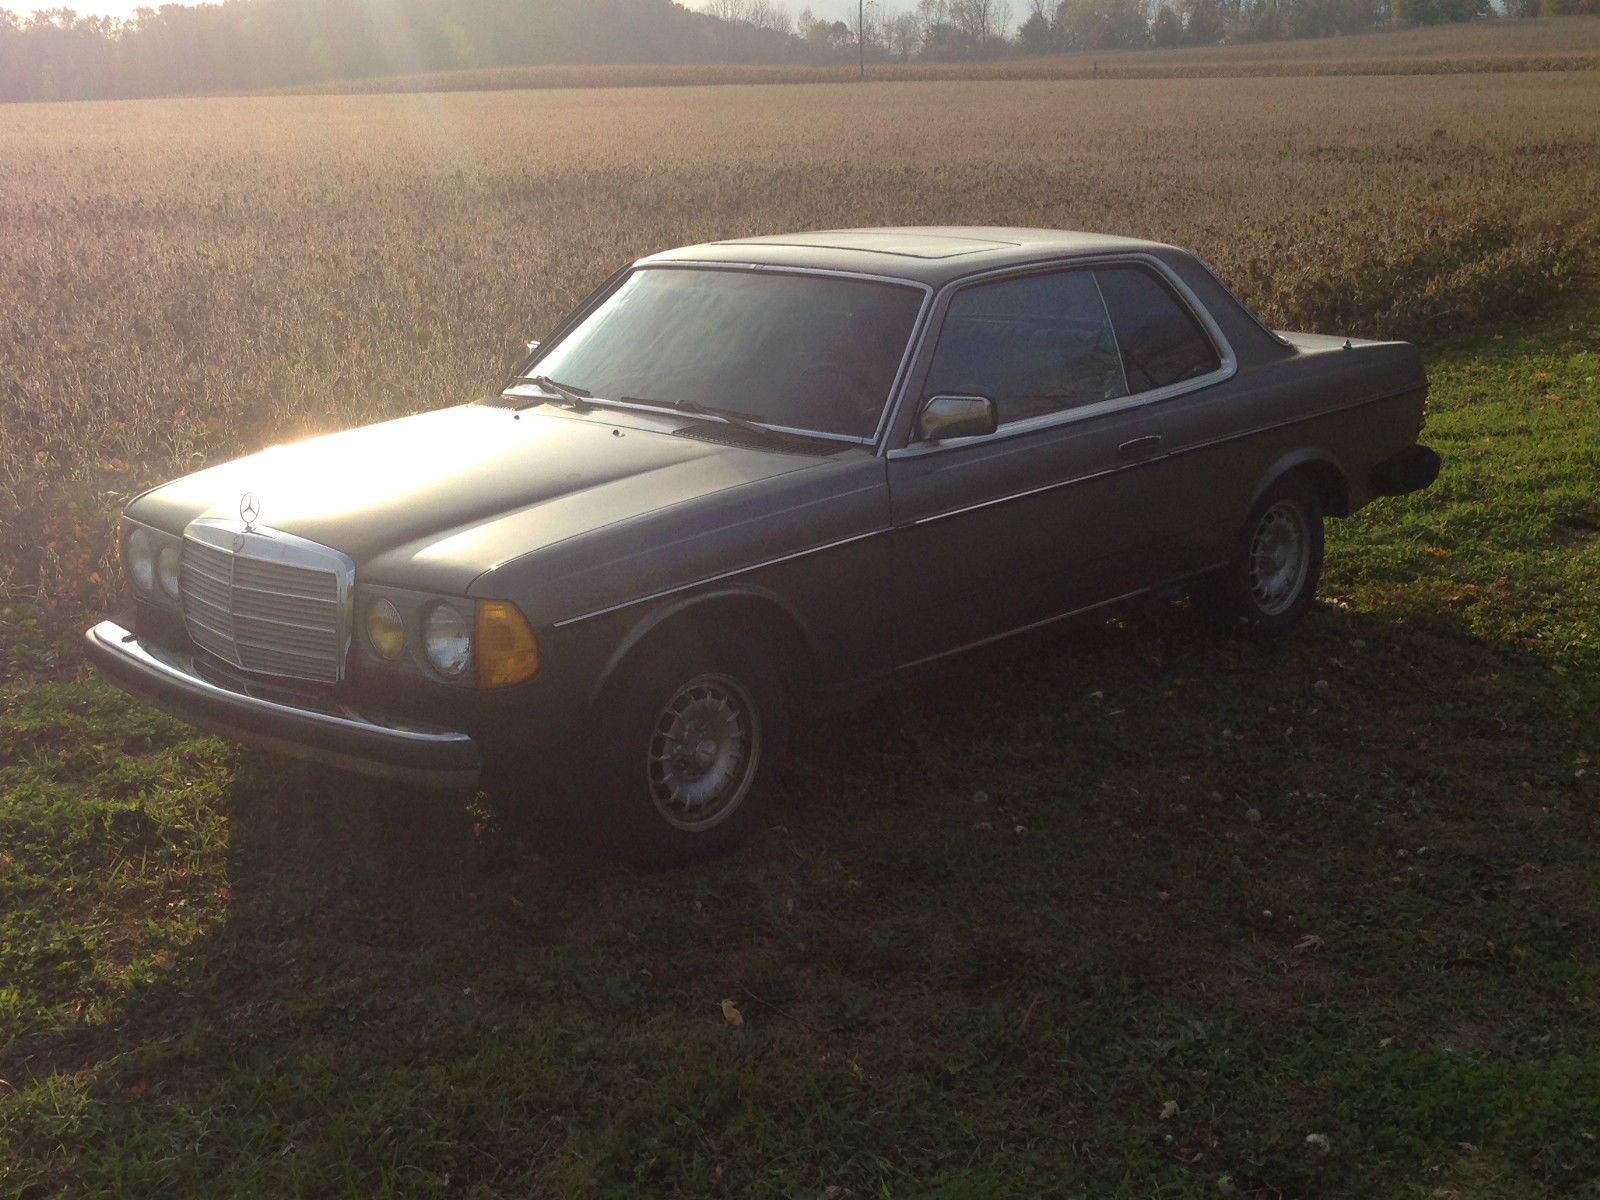 300cd w123 coupe classic mercedes benz 300 series 1985 for Mercedes benz 300 series